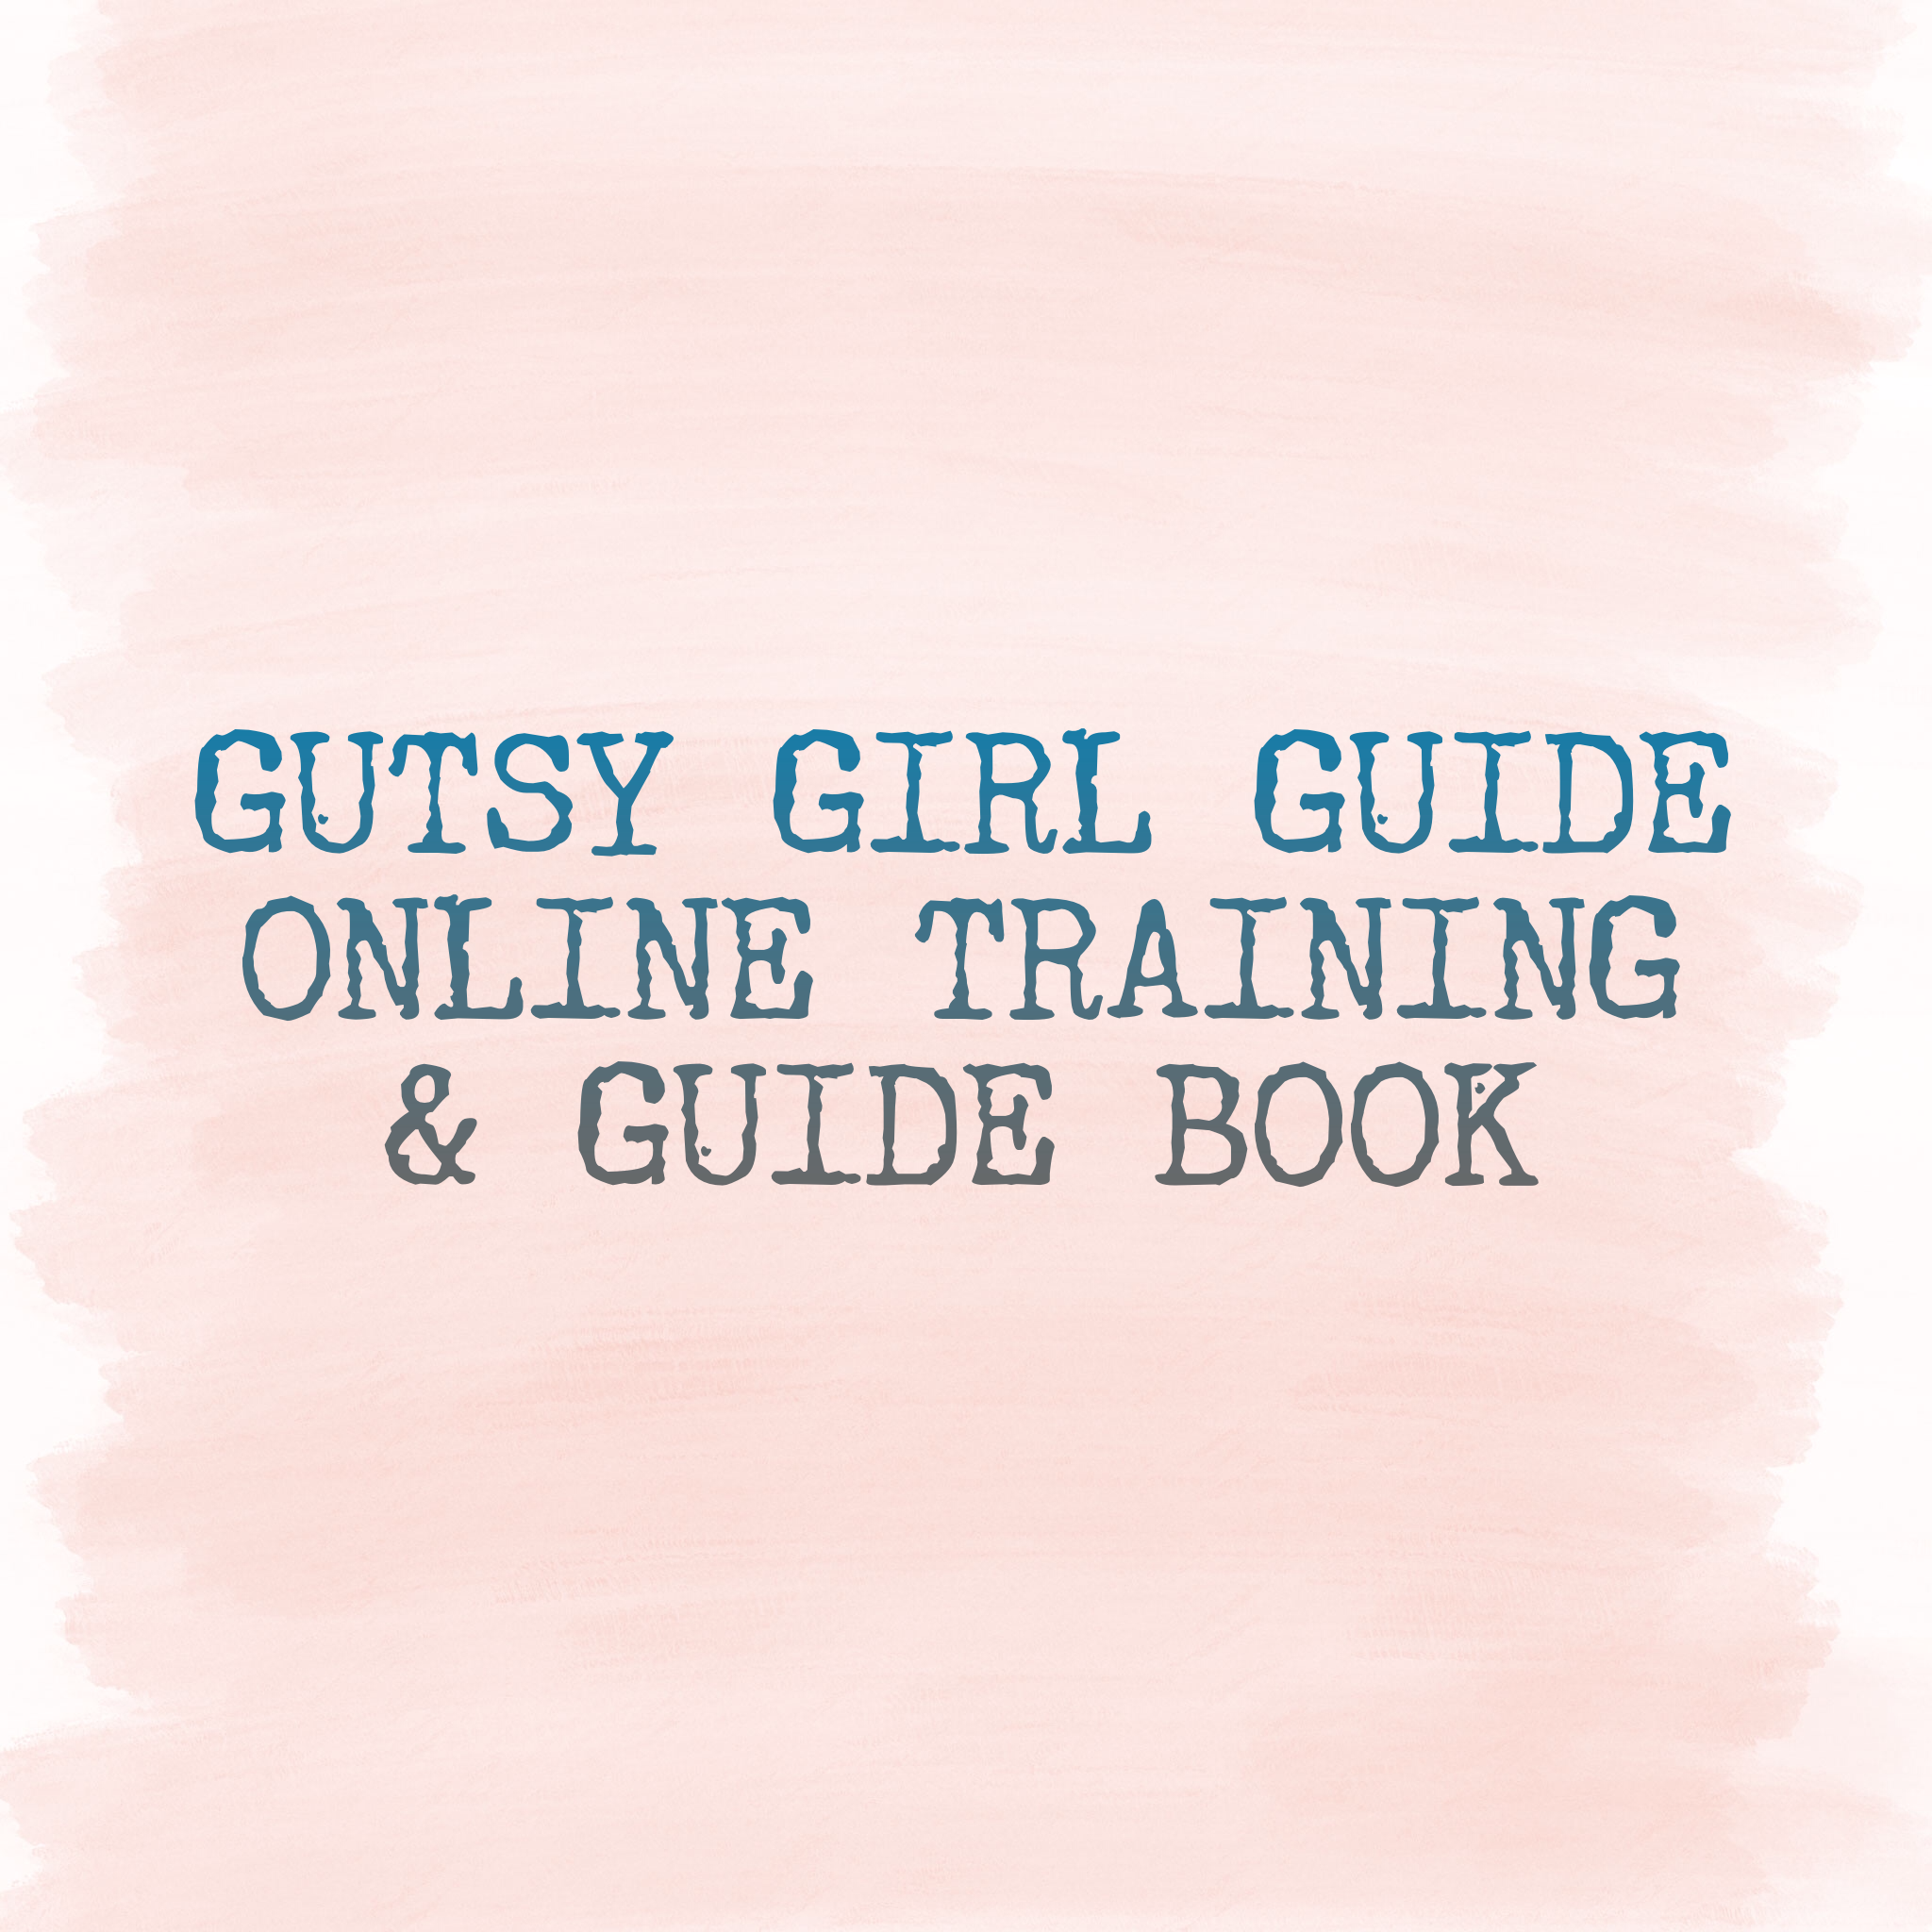 Gutsy_Girl_Guide_Training_Course.png